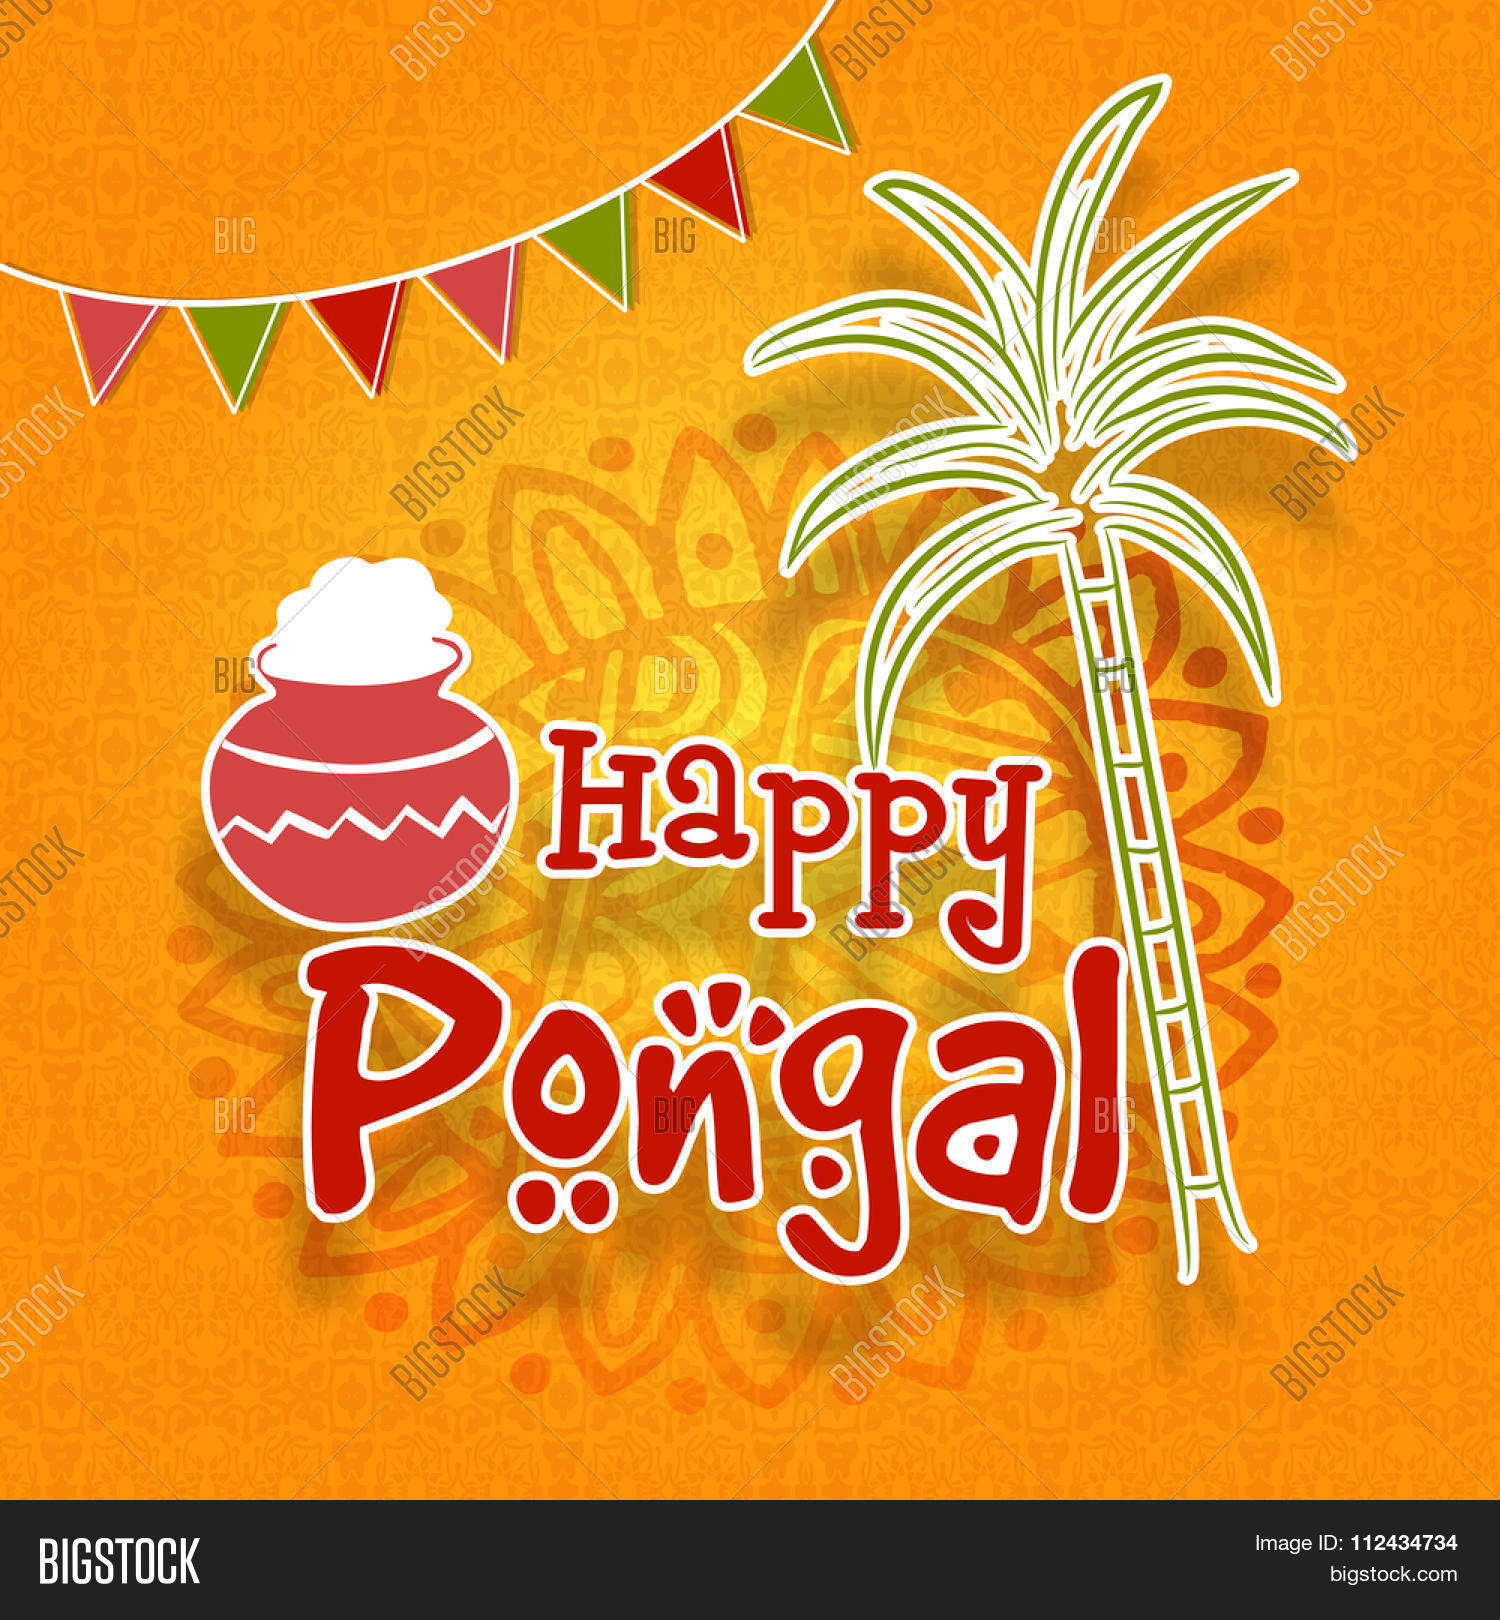 South indian harvesting festival vector photo bigstock south indian harvesting festival happy pongal celebration greeting card with sugarcane and traditional rice mud kristyandbryce Images